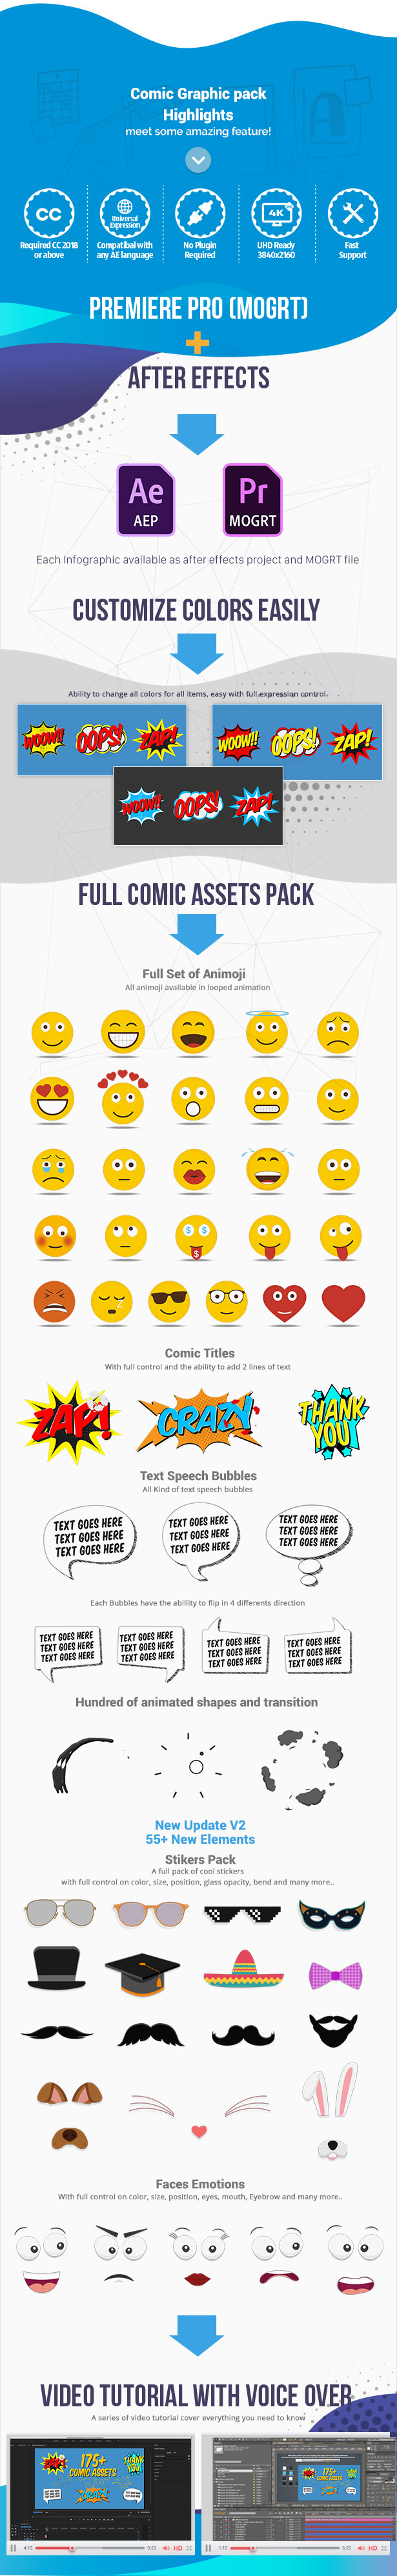 Comic Titles - Speech Bubbles - Emoji - Stickers - Flash FX Graphic Pack - 3